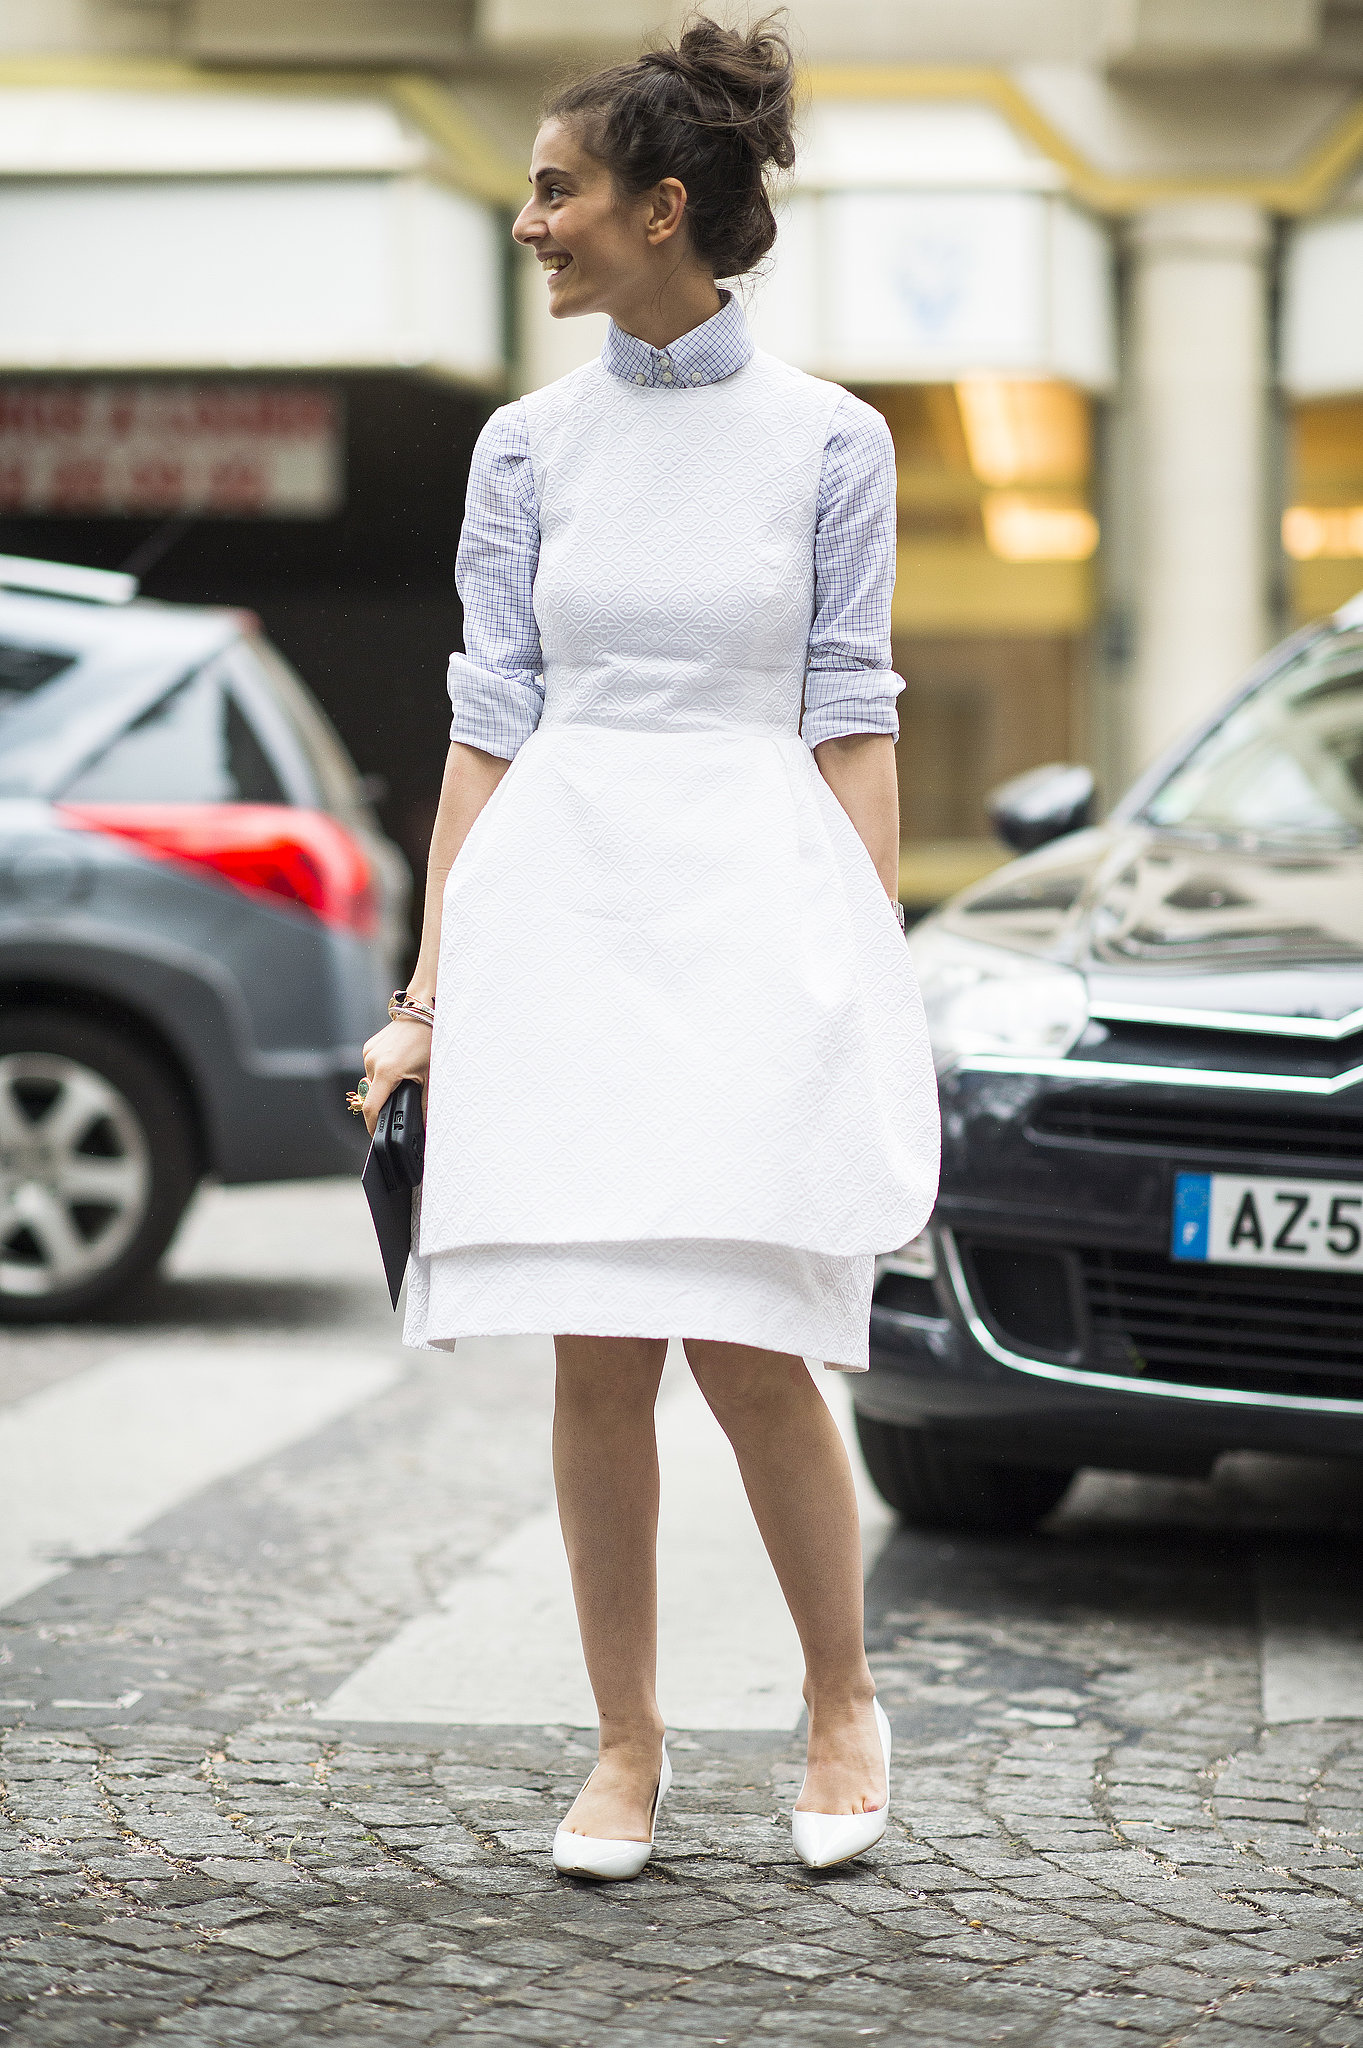 Structured to hold its shape, this white-dress look put a seri